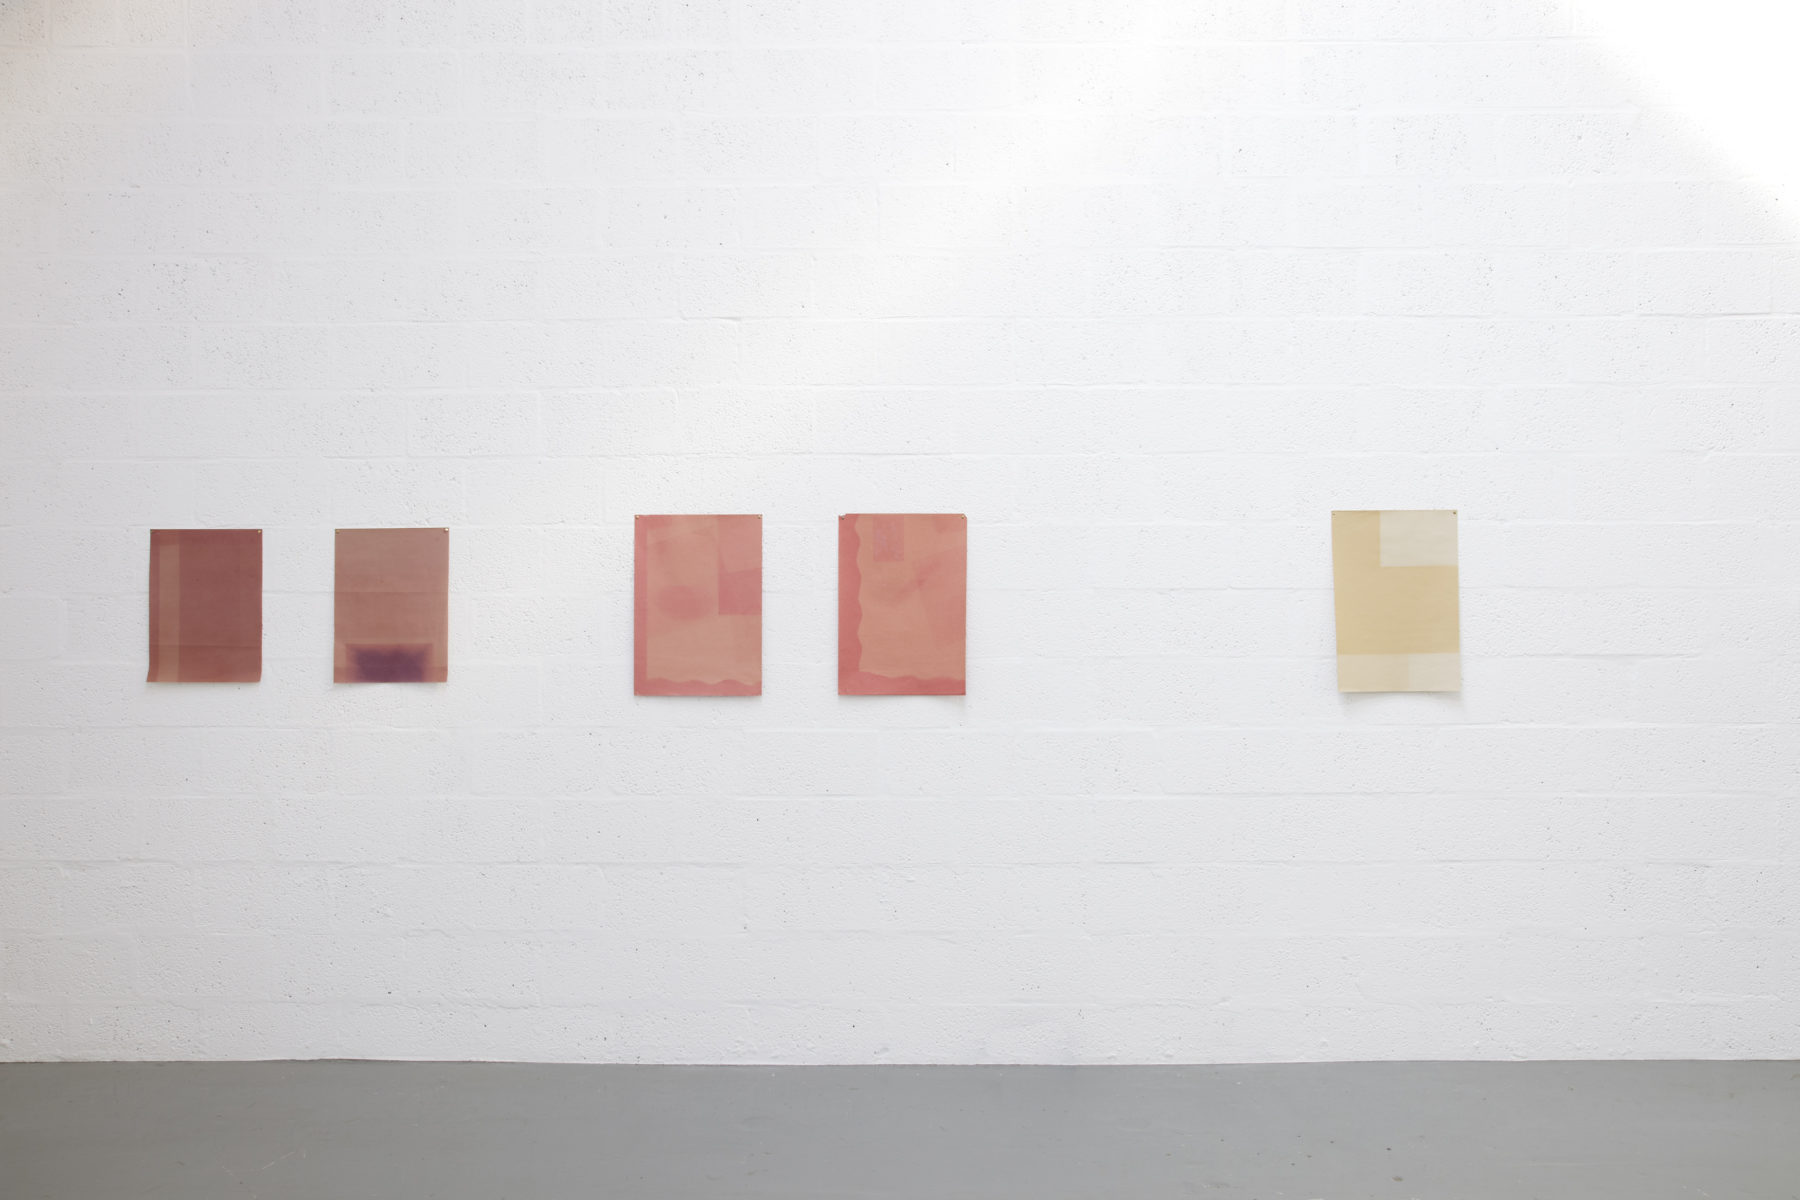 Installation view of Sara MacKillop, Faded Paper (2011). Five sheets of sugar paper, faded by the sun, are pinned to the white gallery wall.